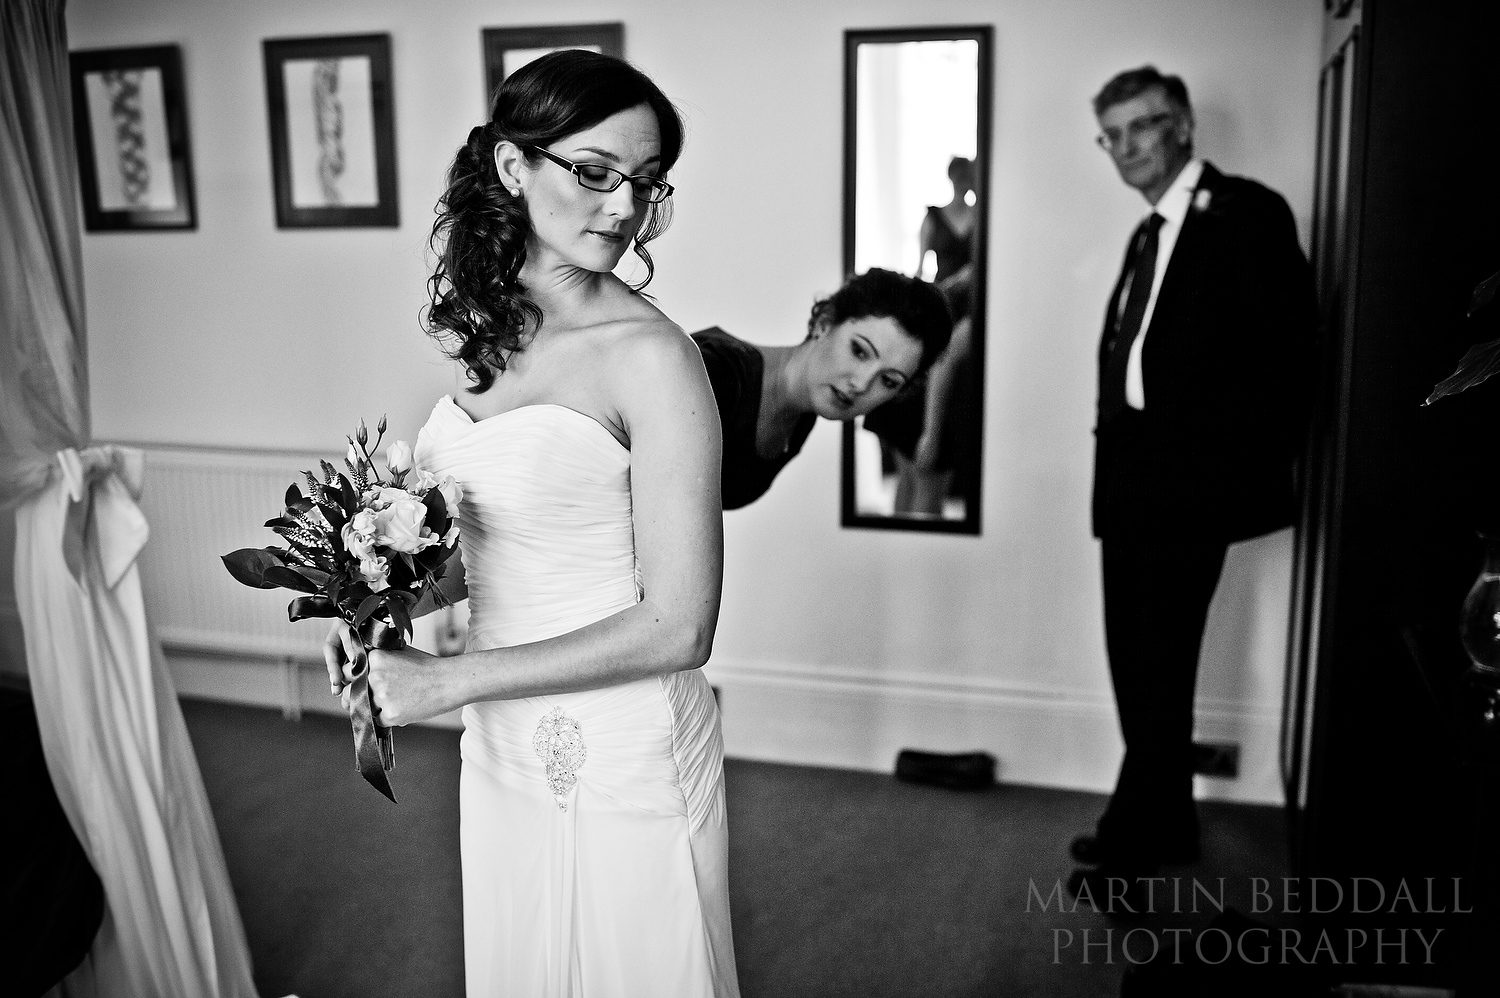 Father looks on as the bride gets ready